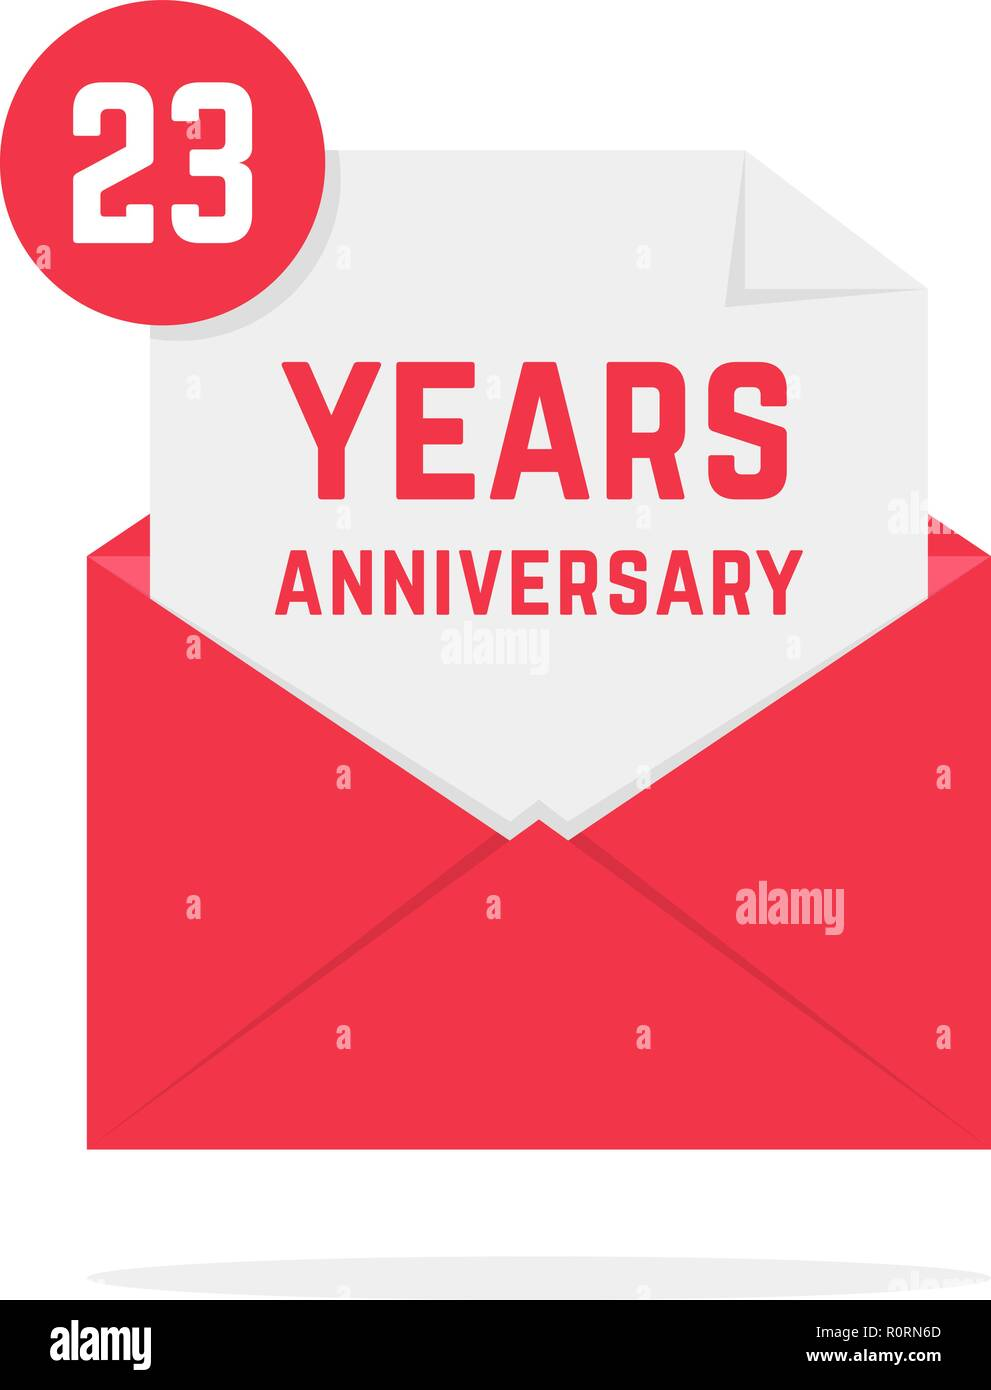 23 years anniversary icon in pink open letter Stock Vector